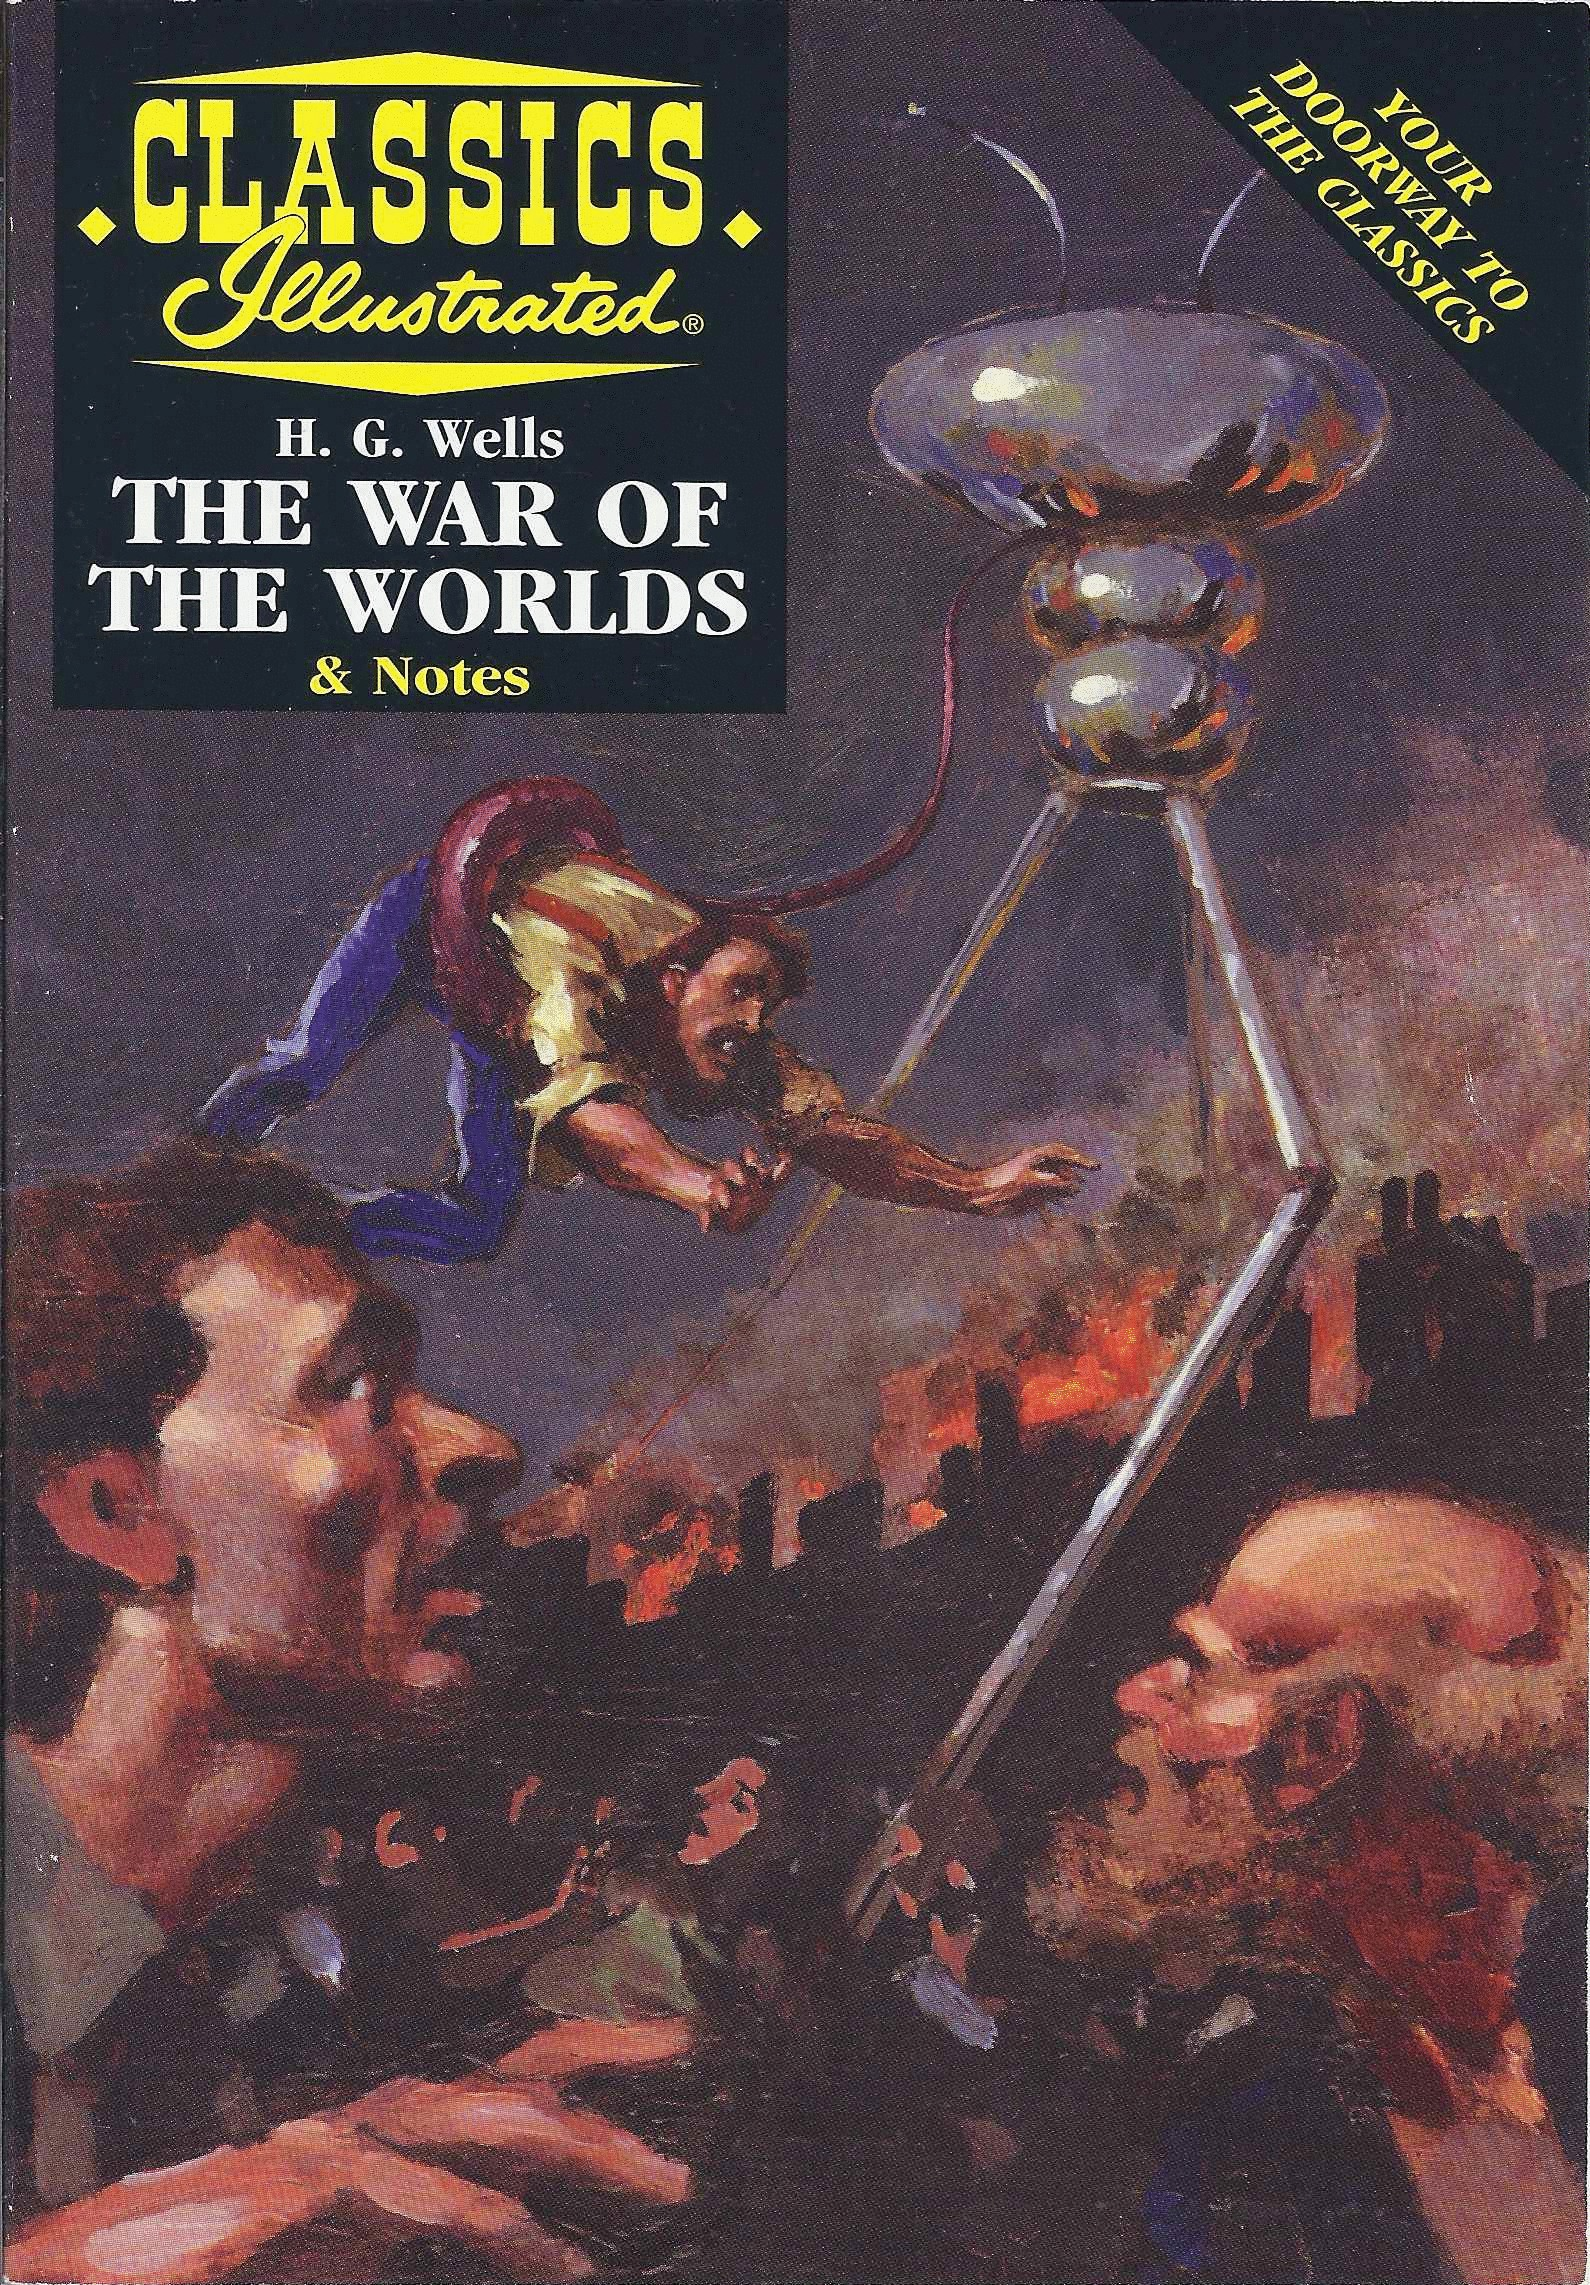 h g wells' the war of the